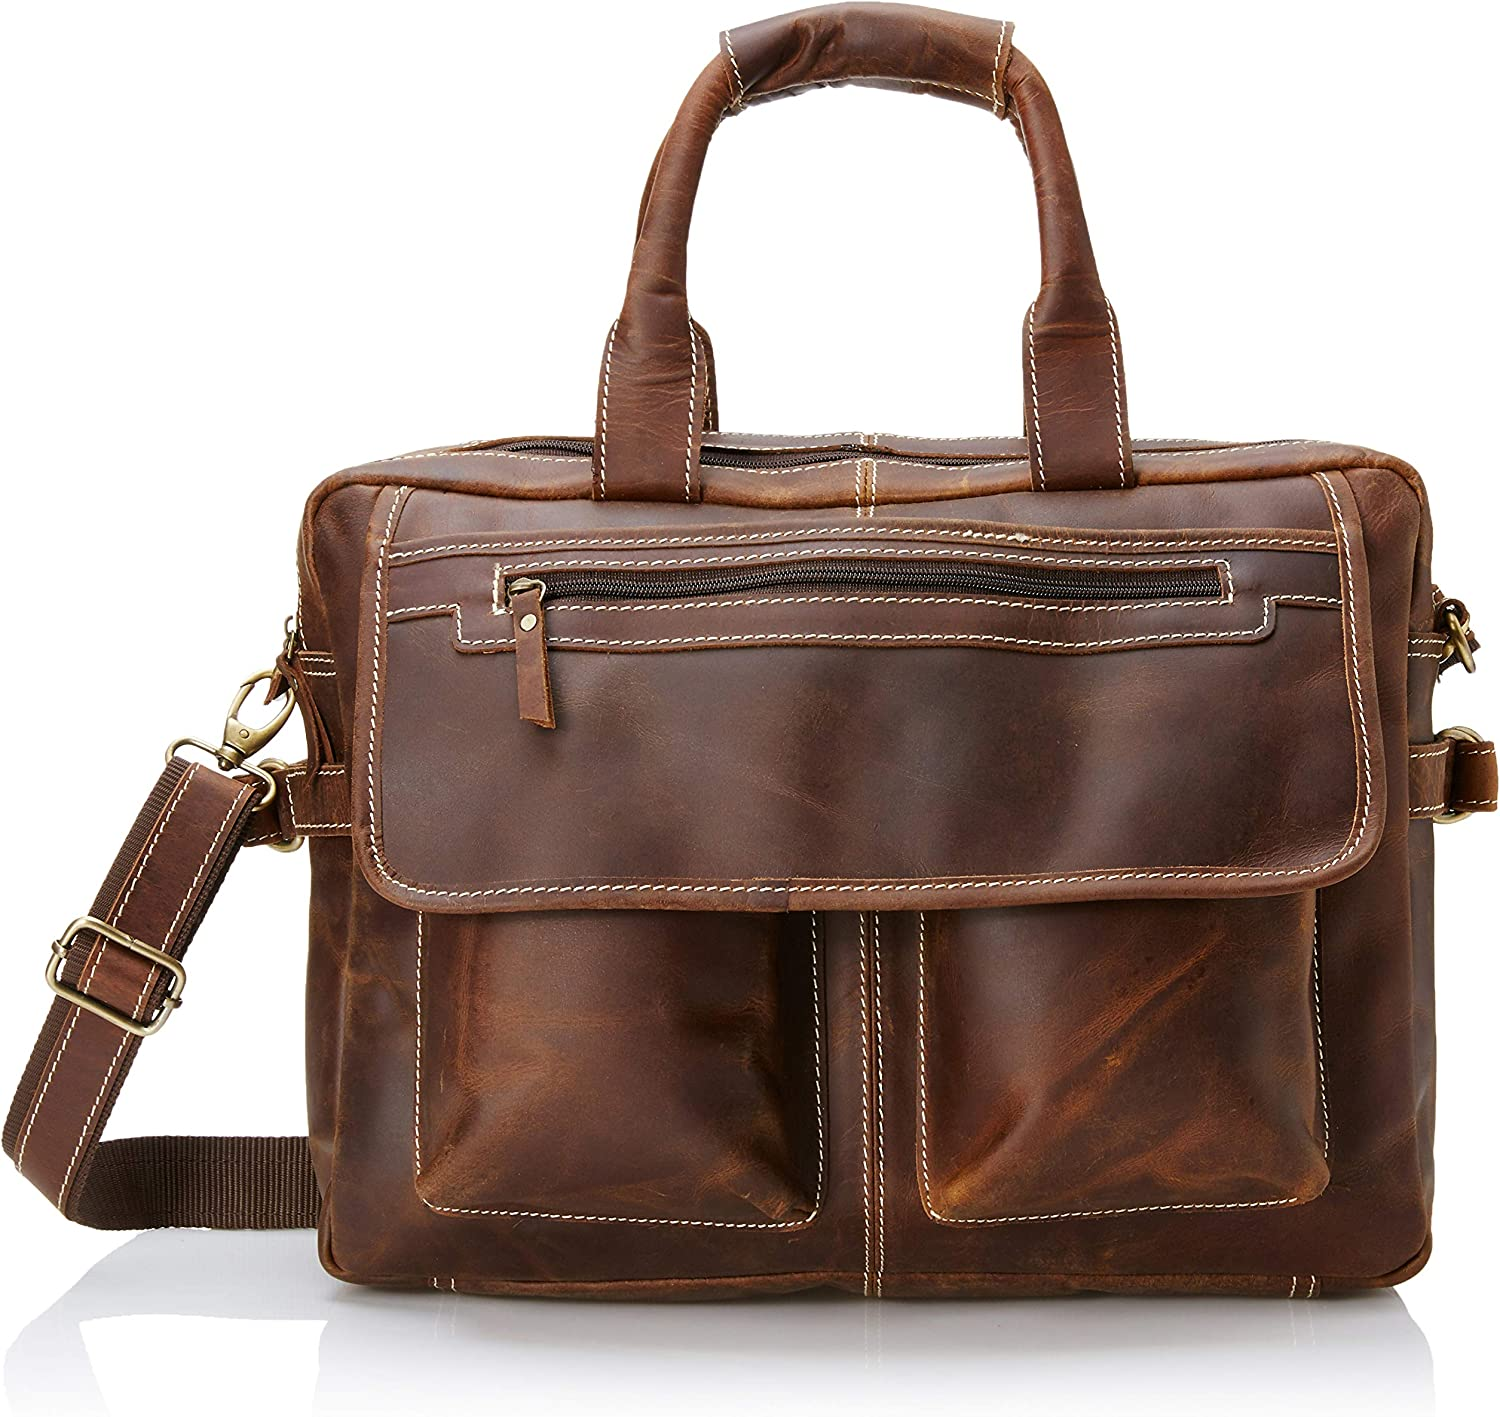 Made in the USA Book Bag Leather Tote Copper Leather Bag Work Bag Shoulder Bag Fathers Day Hand Sewn Shopping Bag